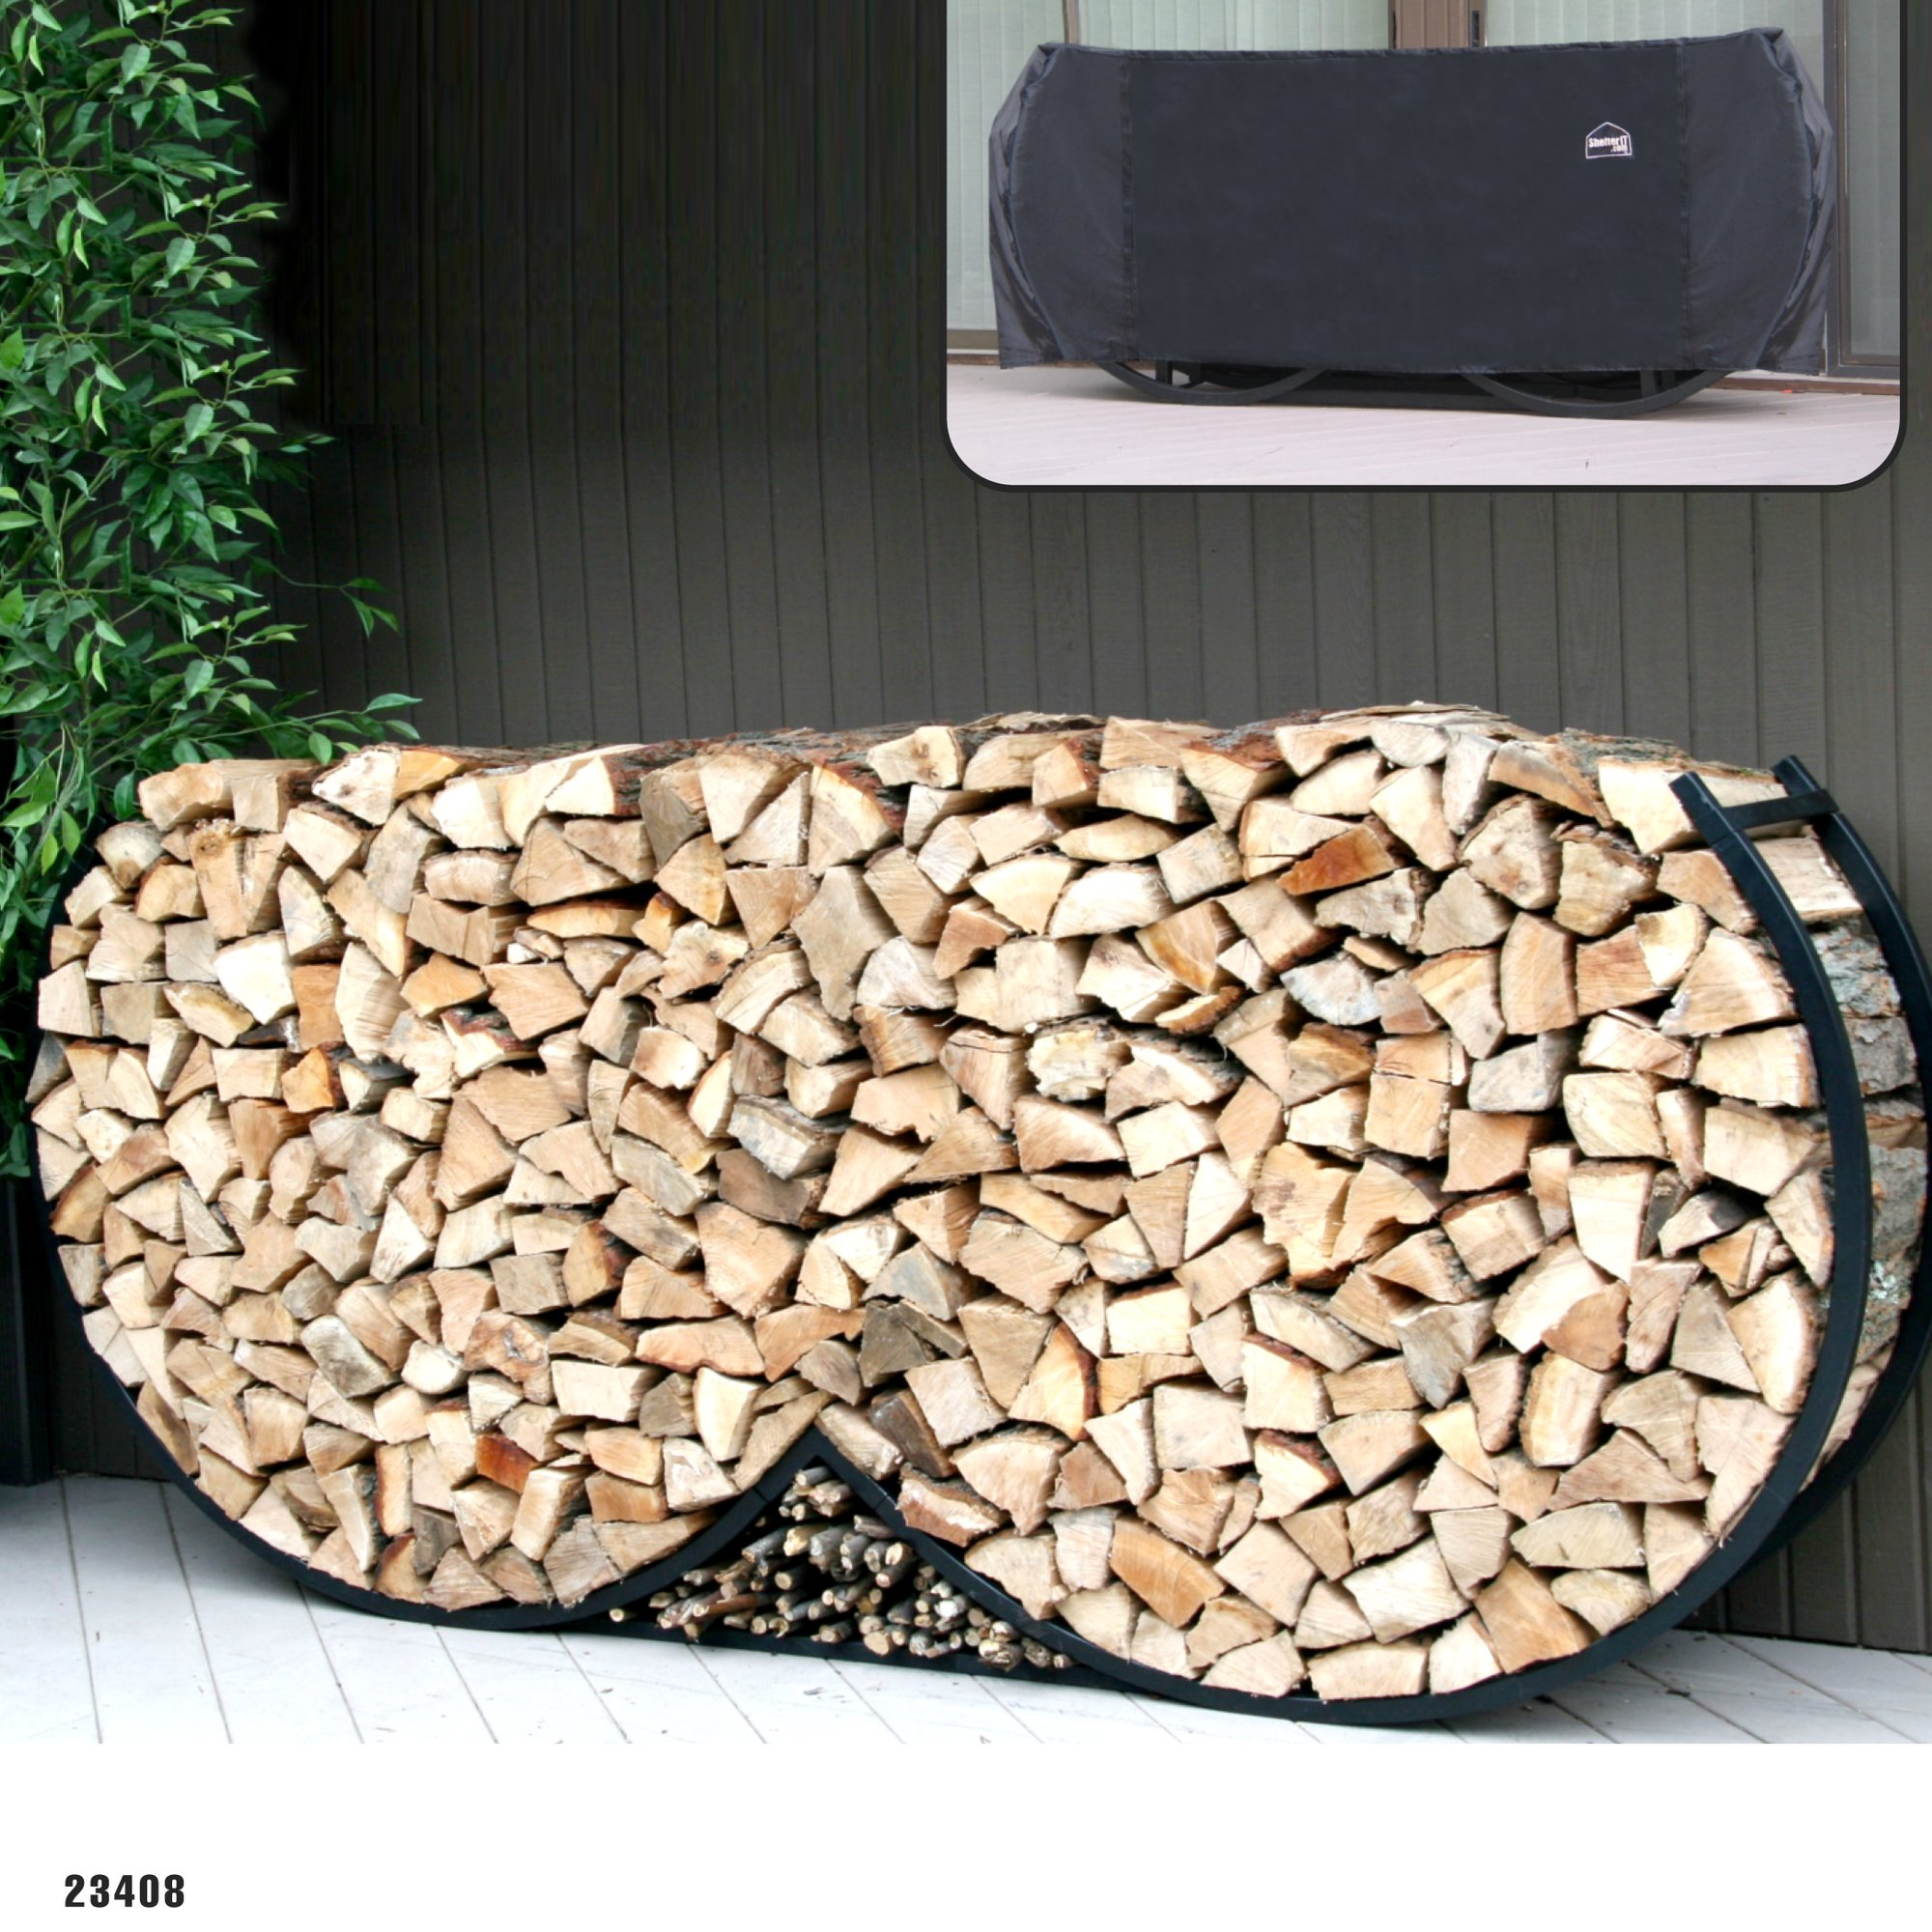 DIY Outdoor Firewood Rack-fireplace accessories